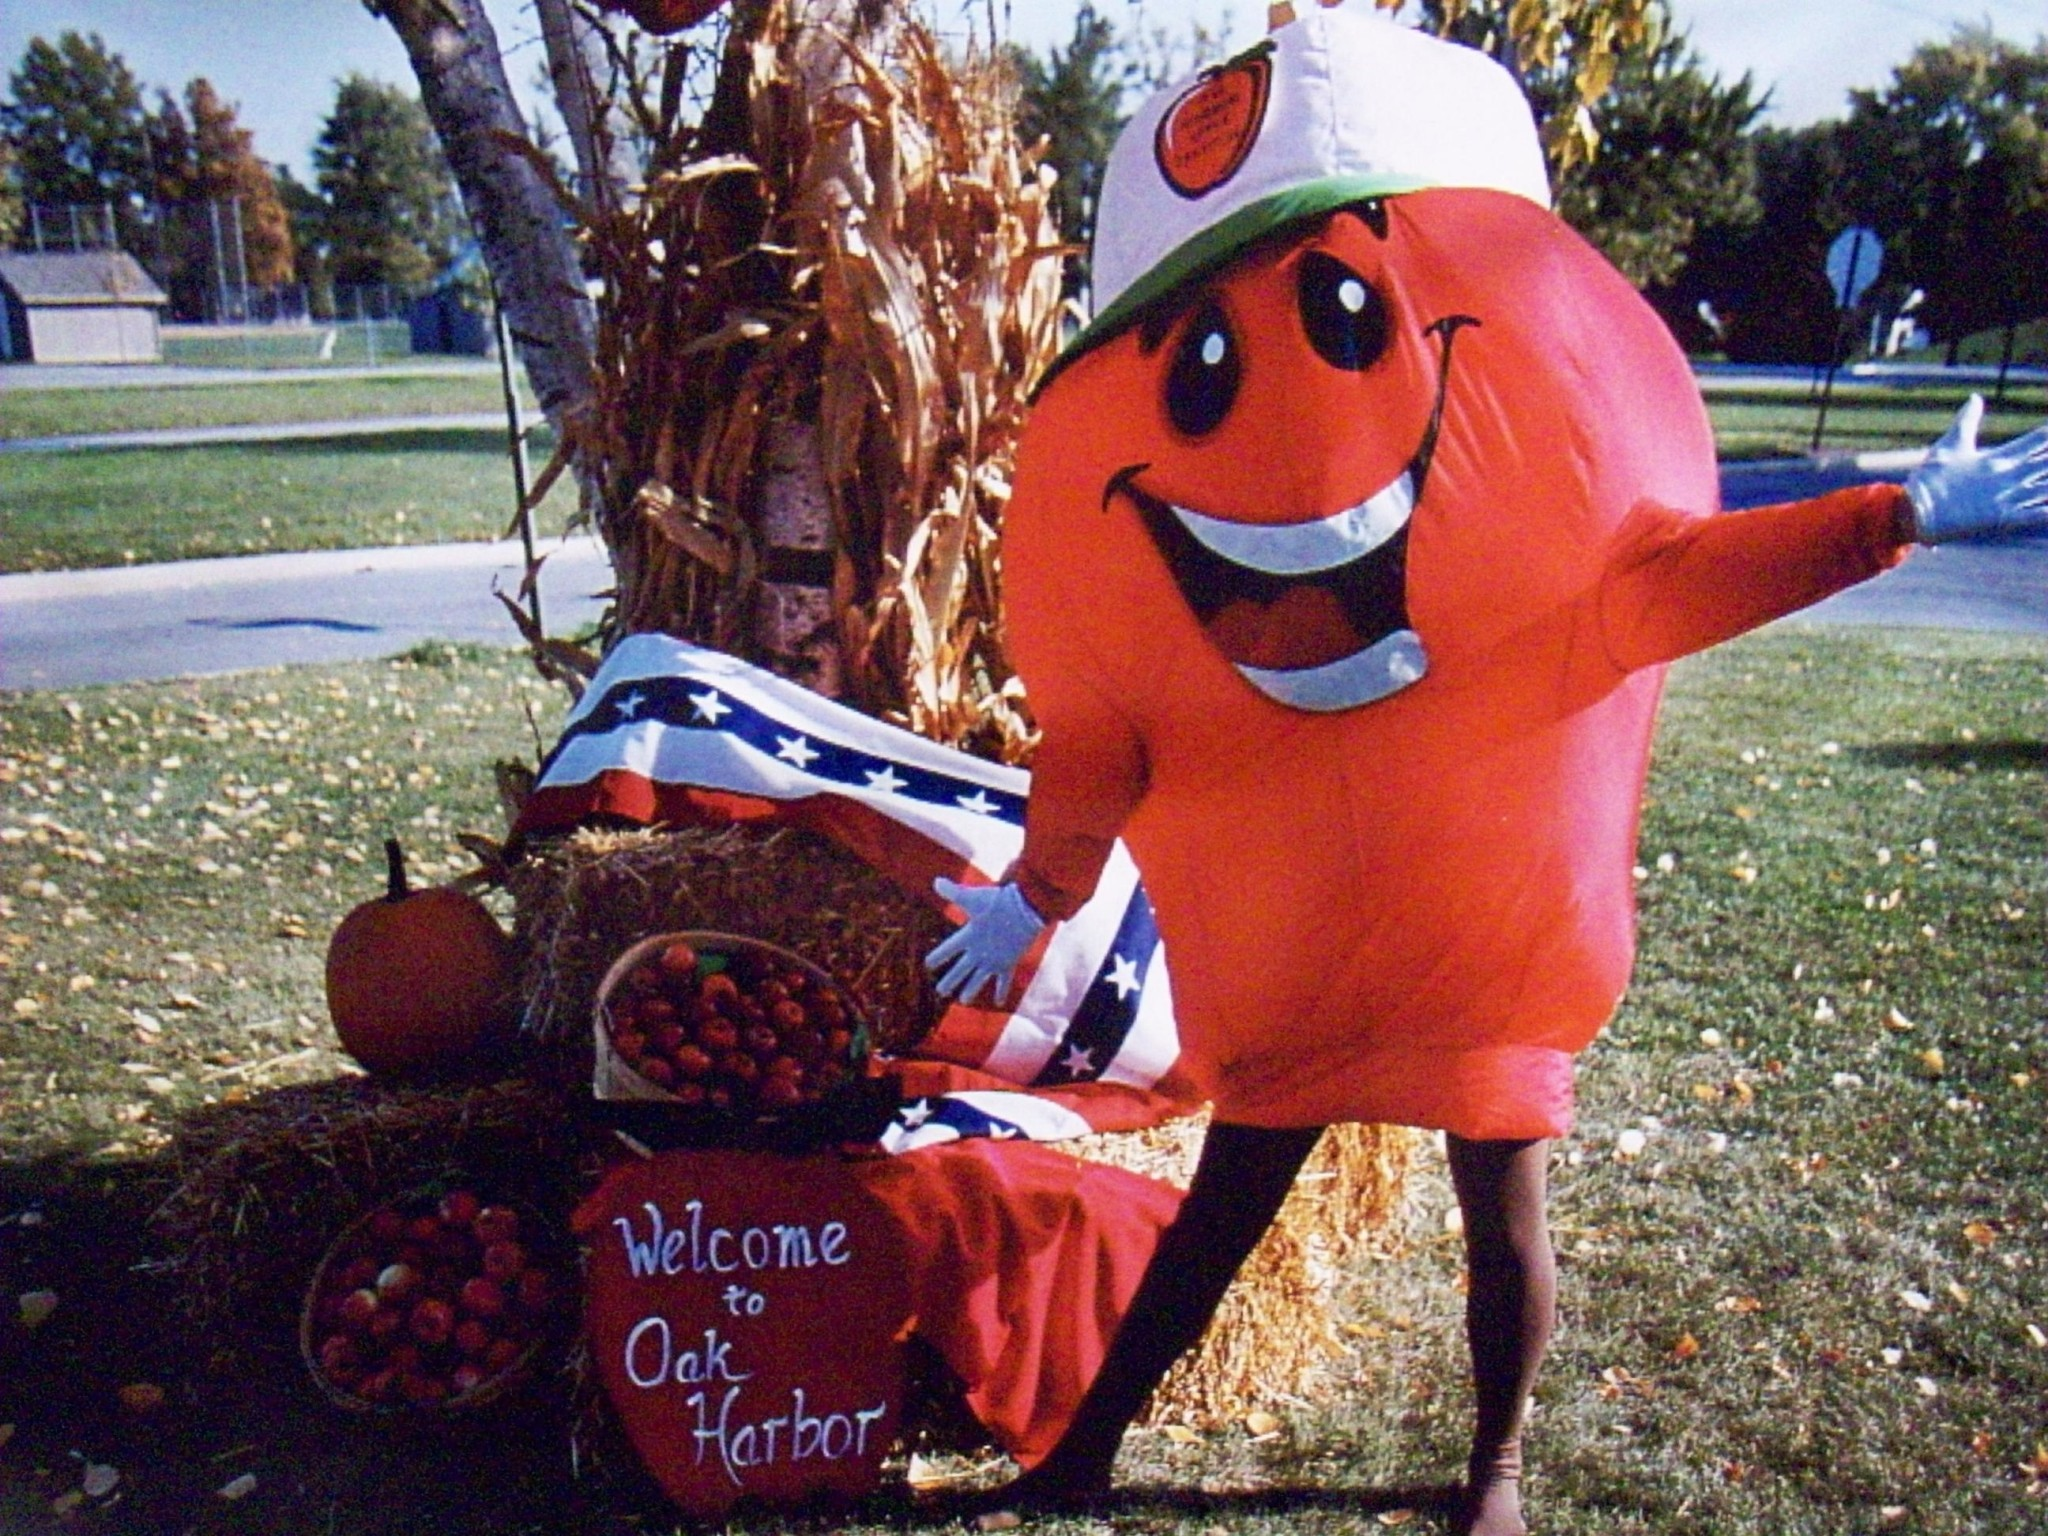 More than 25,000 visitors are expected at the Oak Harbor Apple Festival, which is celebrating its 41st year in 2019. The family-oriented festival offers something for everyone, including a Grand Parade, entertainment, food, music, contests, crafts and car and bike show and more. (Photo courtesy of Oak Harbor Area Chamber of Commerce)